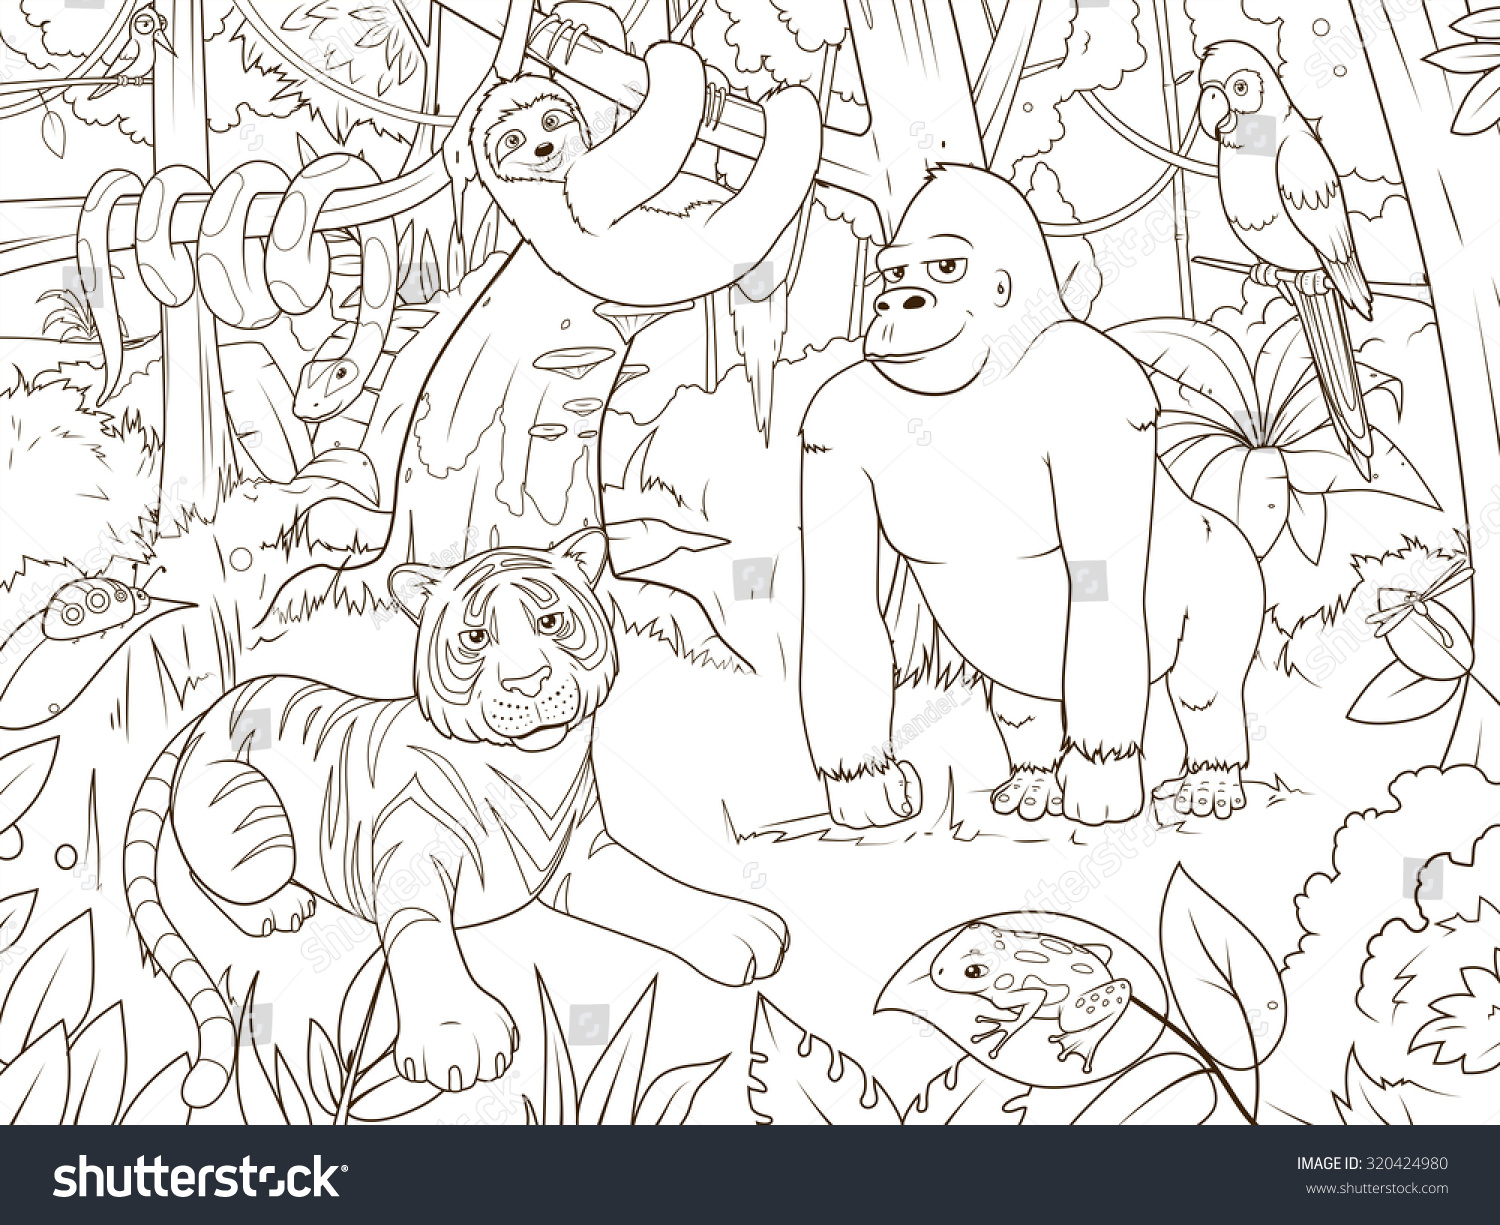 Jungle Animals Cartoon Coloring Book Vector Stock Vector 320424980